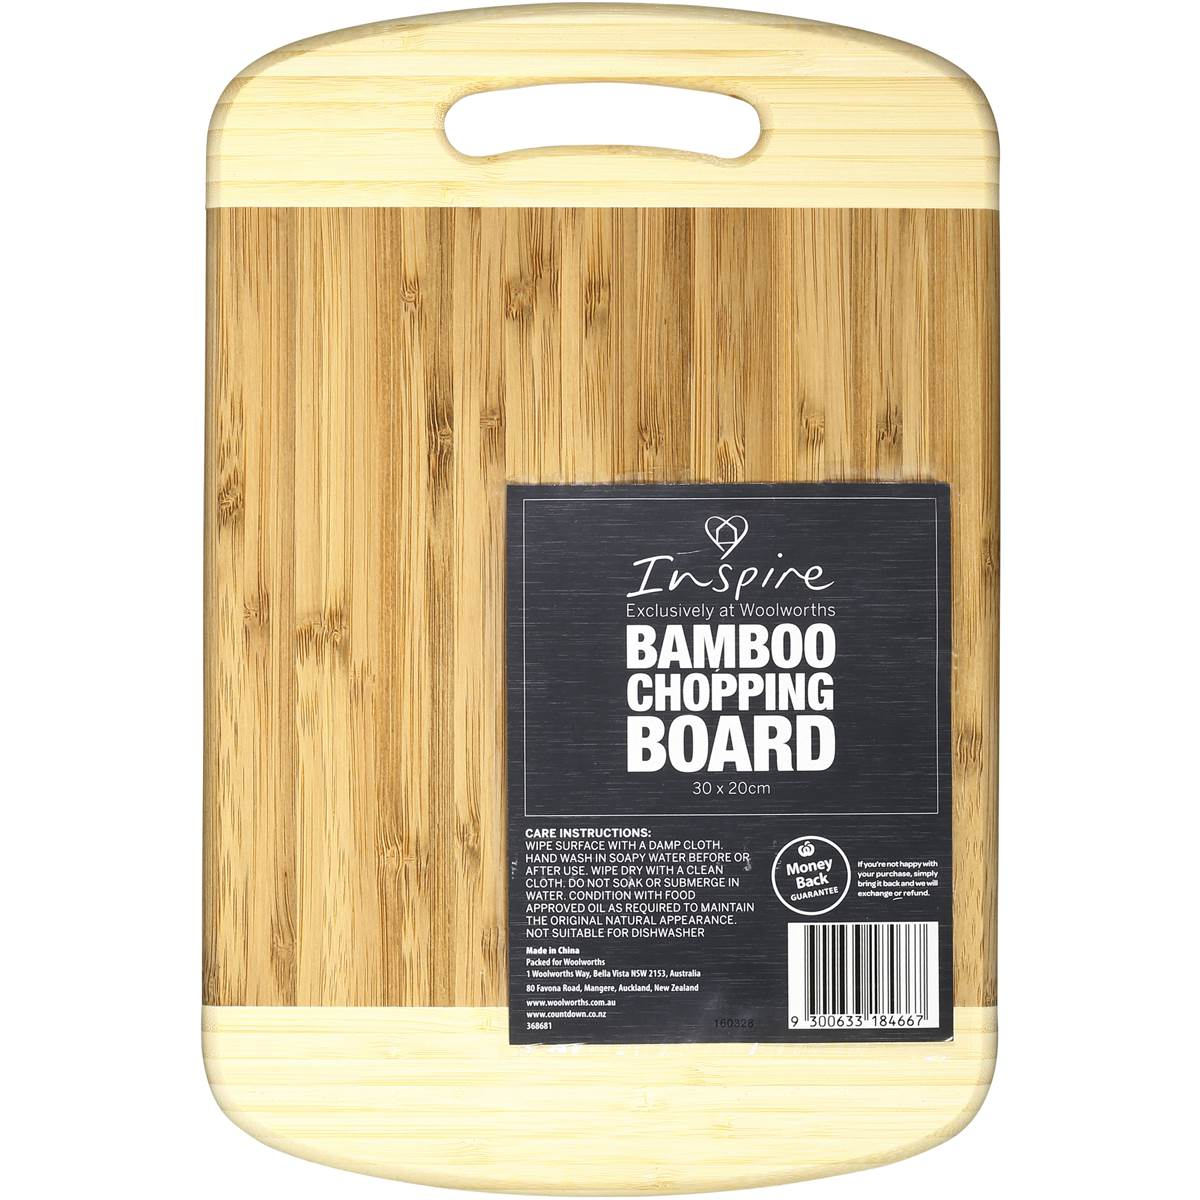 Ritzy Home Essentials Kitchen Gadget Bamboo Chopping Board Image Home Essentials Kitchen Gadget Bamboo Chopping Board Each Bamboo Cutting Board Care Olive Oil Proper Care Bamboo Cutting Board inspiration Bamboo Cutting Board Care